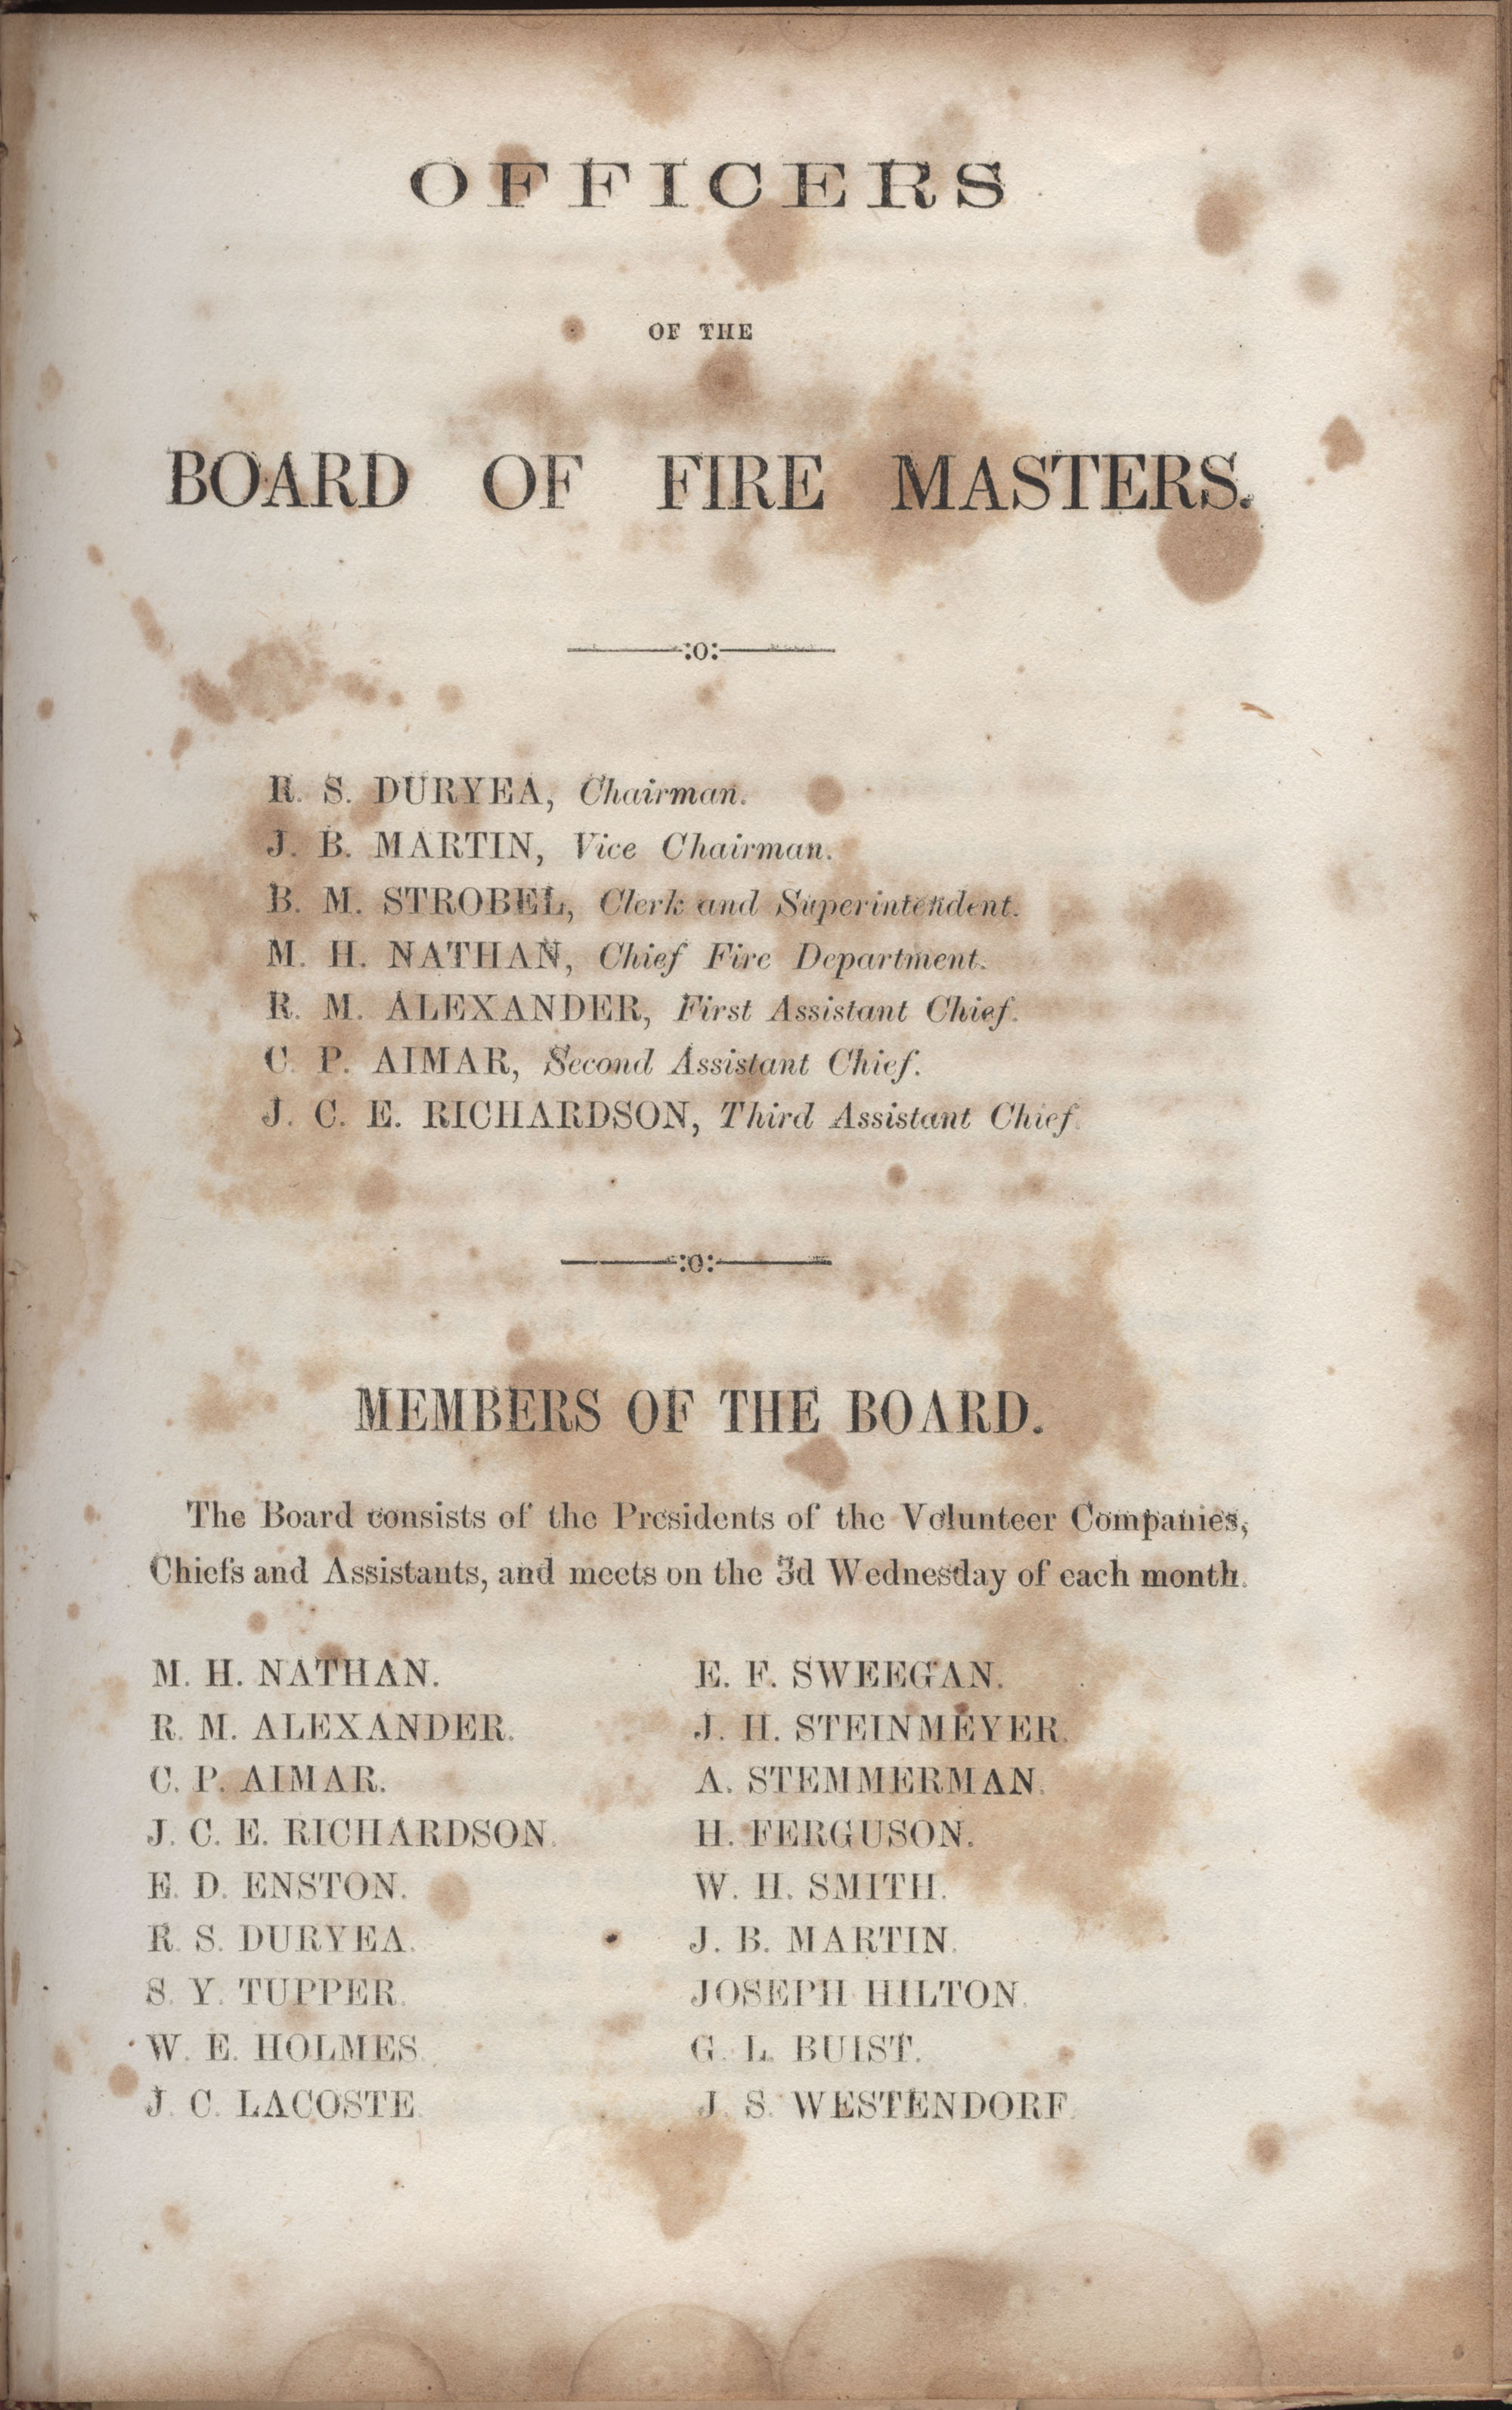 Annual Report of the Chief of the Fire Department of the City of Charleston, page 146